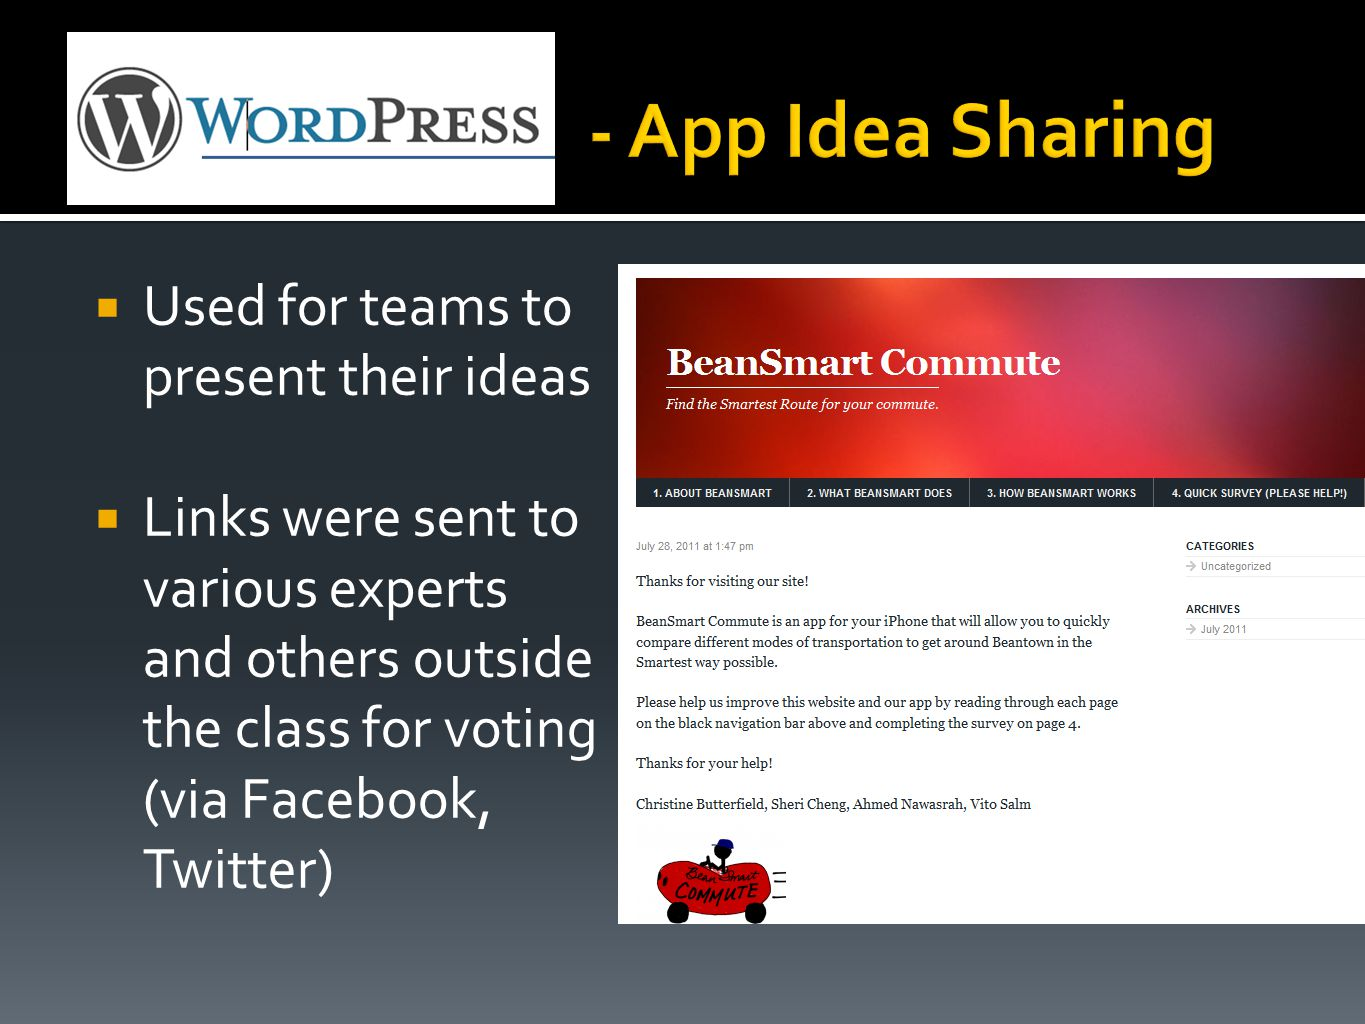  Used for teams to present their ideas  Links were sent to various experts and others outside the class for voting (via Facebook, Twitter)